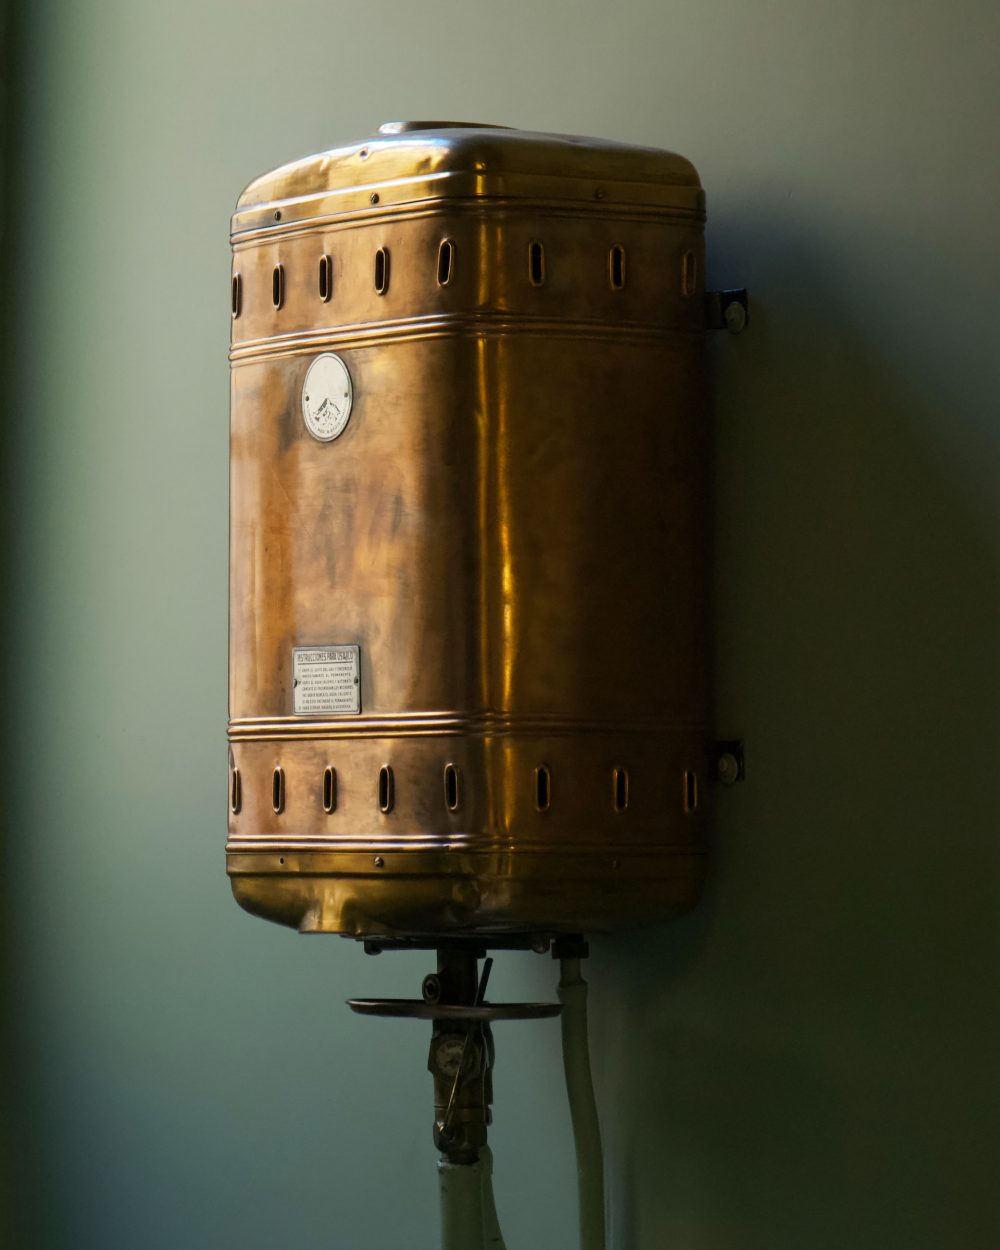 A picture of a boiler